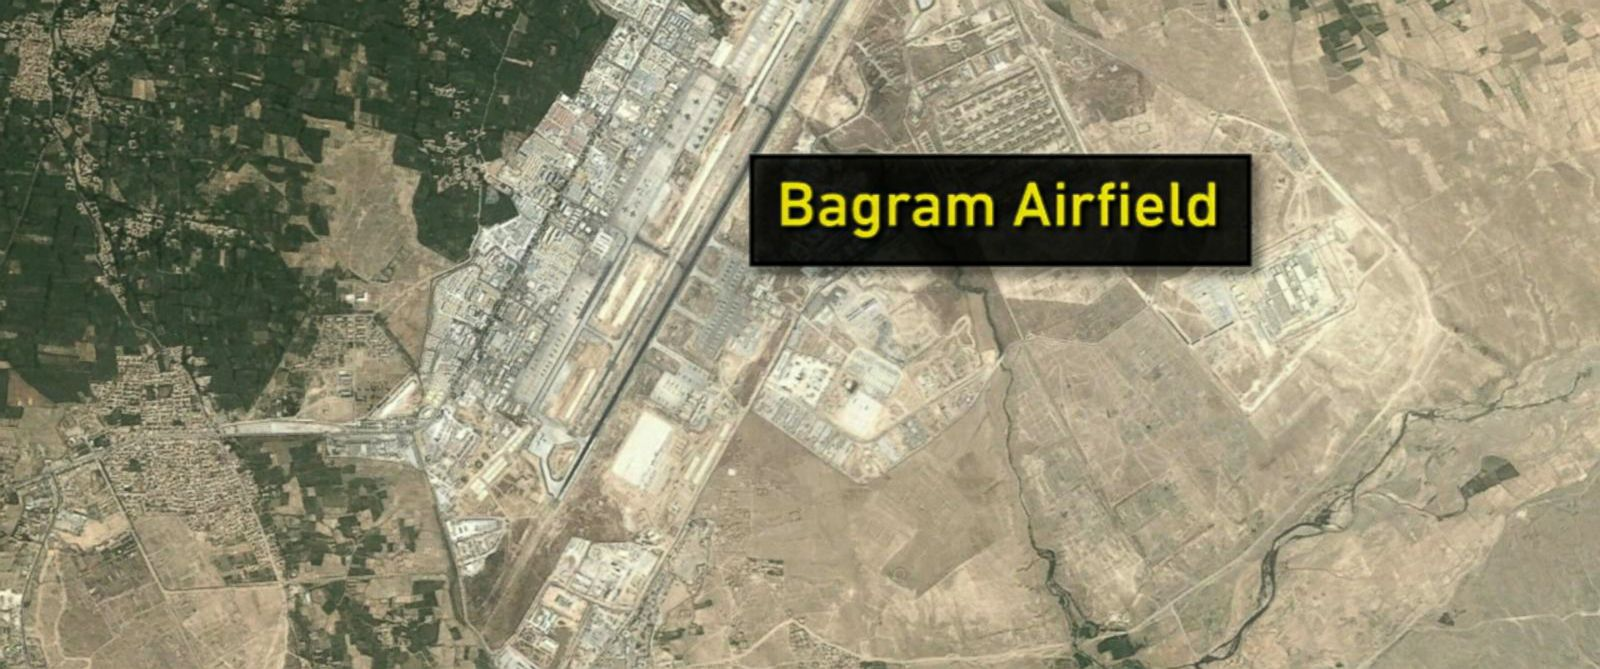 Four Americans Killed By Taliban Suicide Bomber At Bagram Airfield [VIDEO]